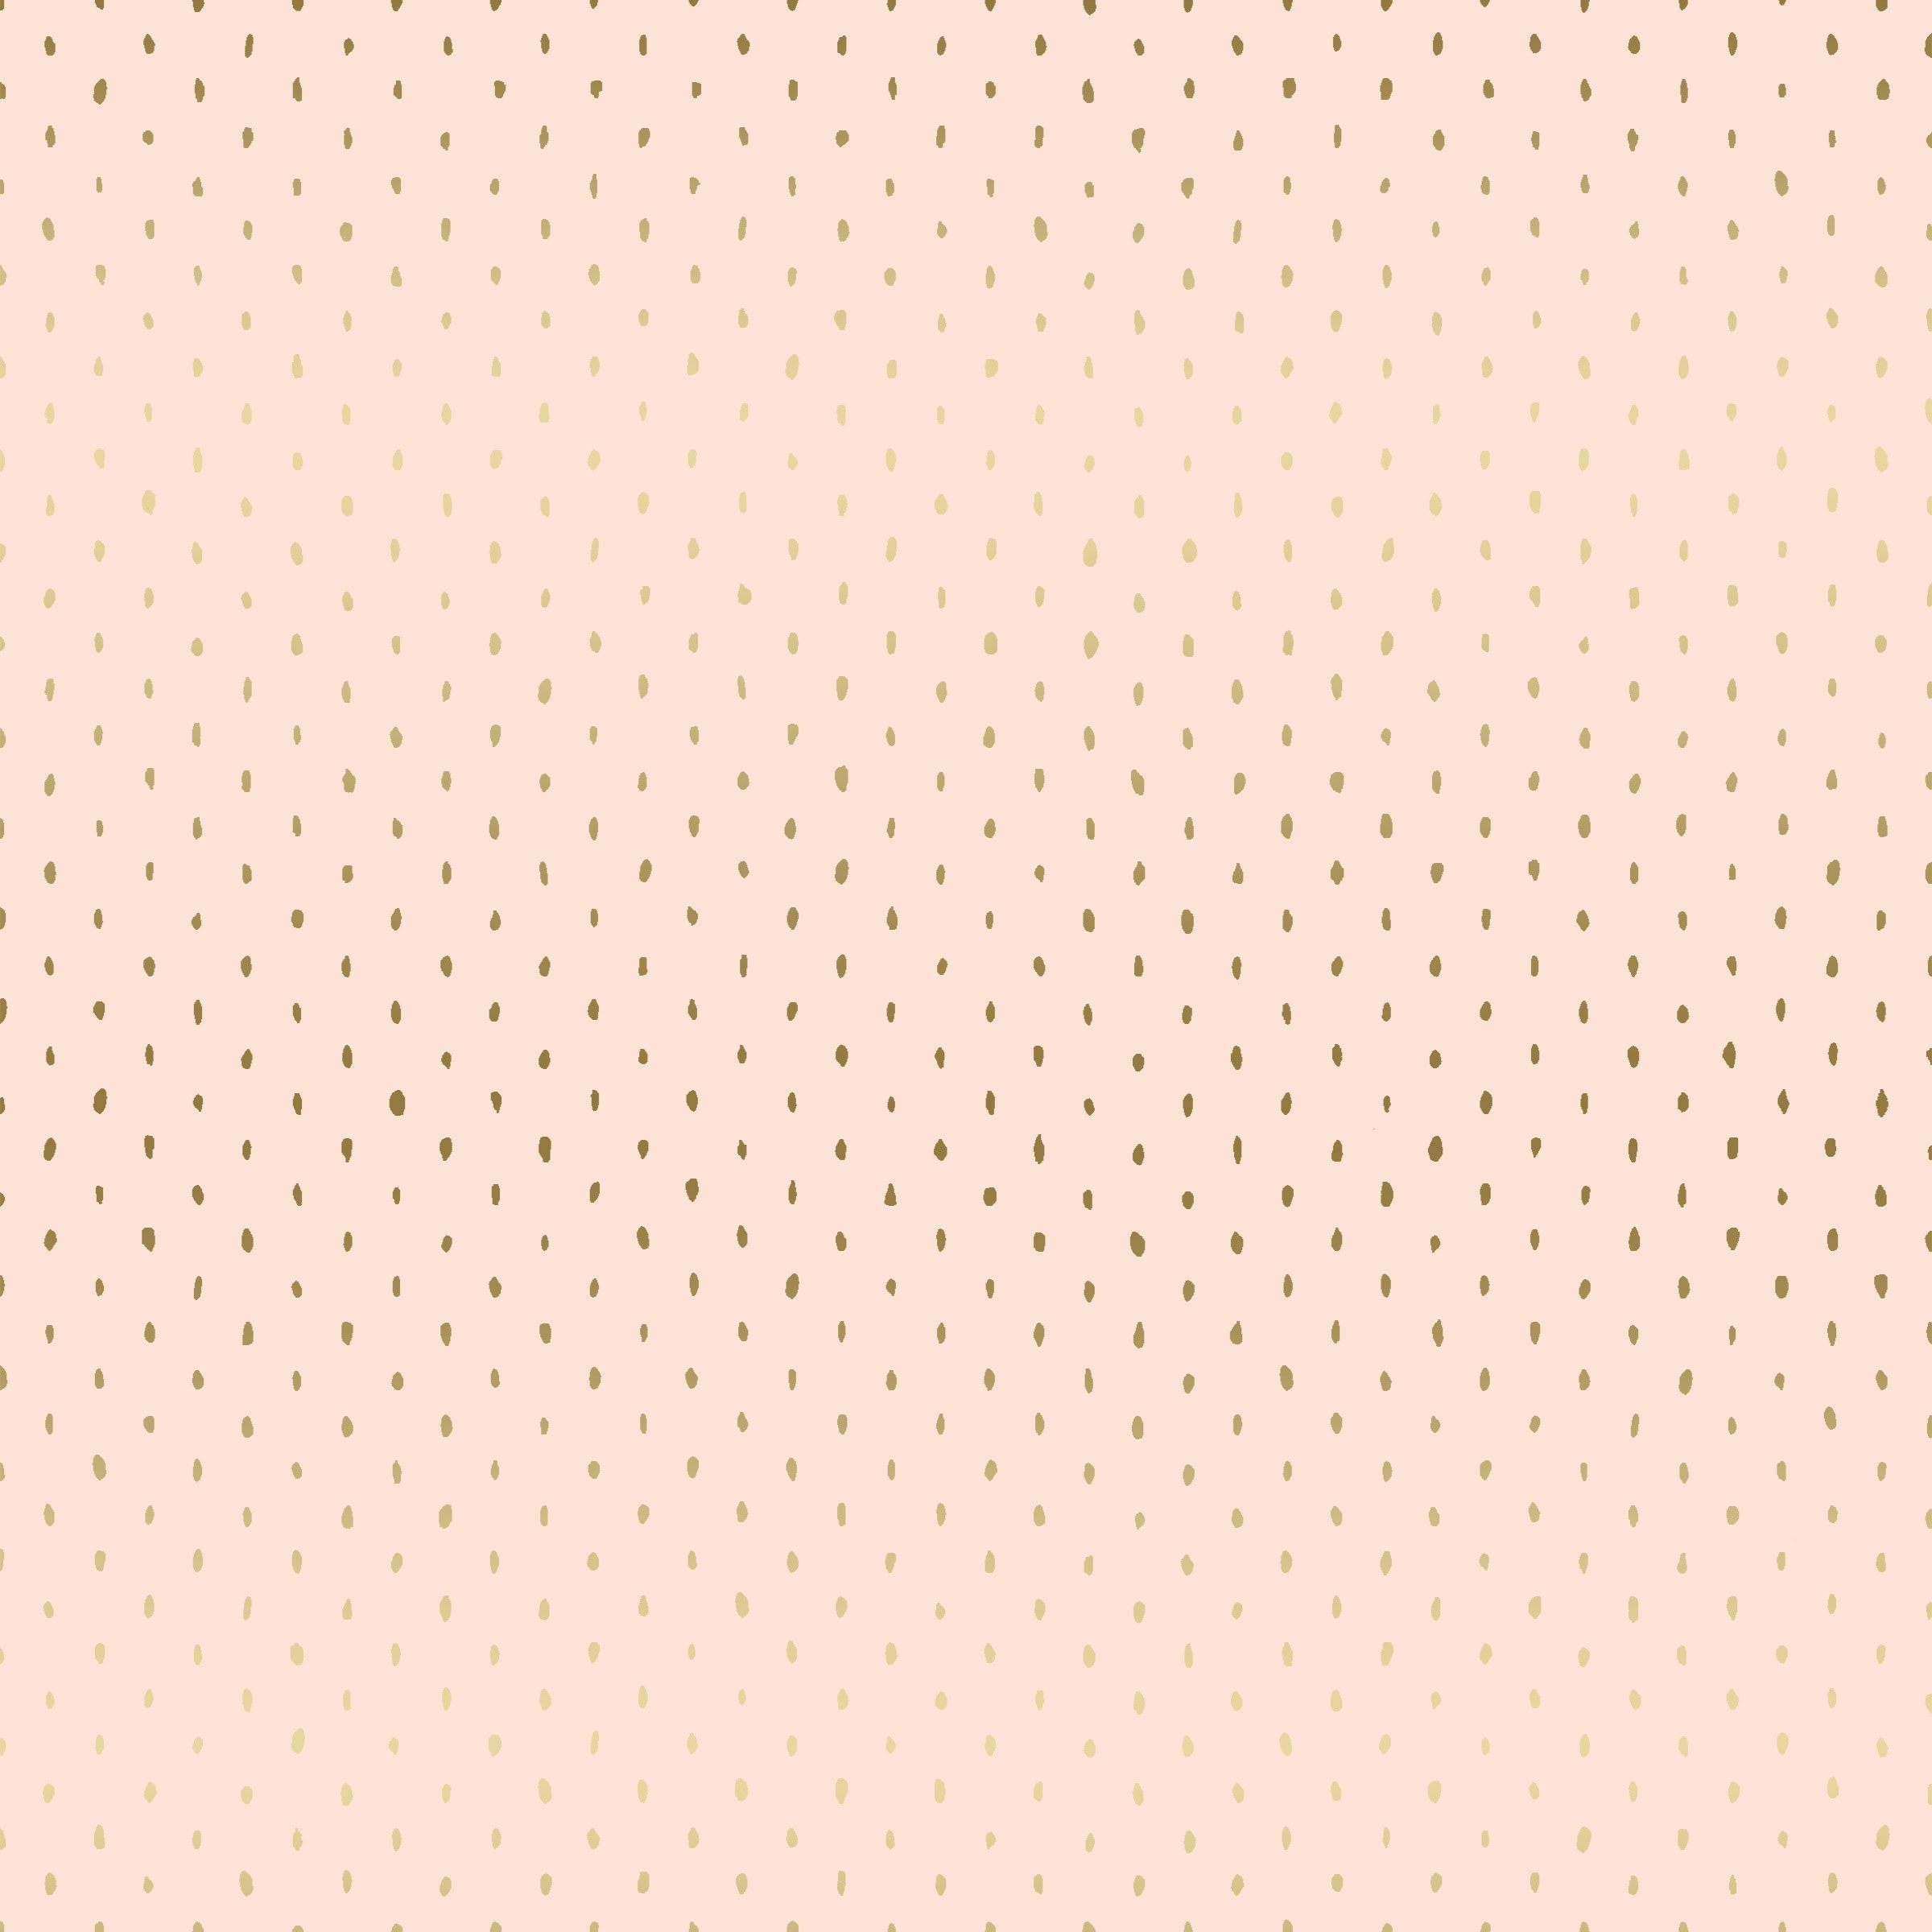 C+S Basics: Stitch and Repeat in Blush